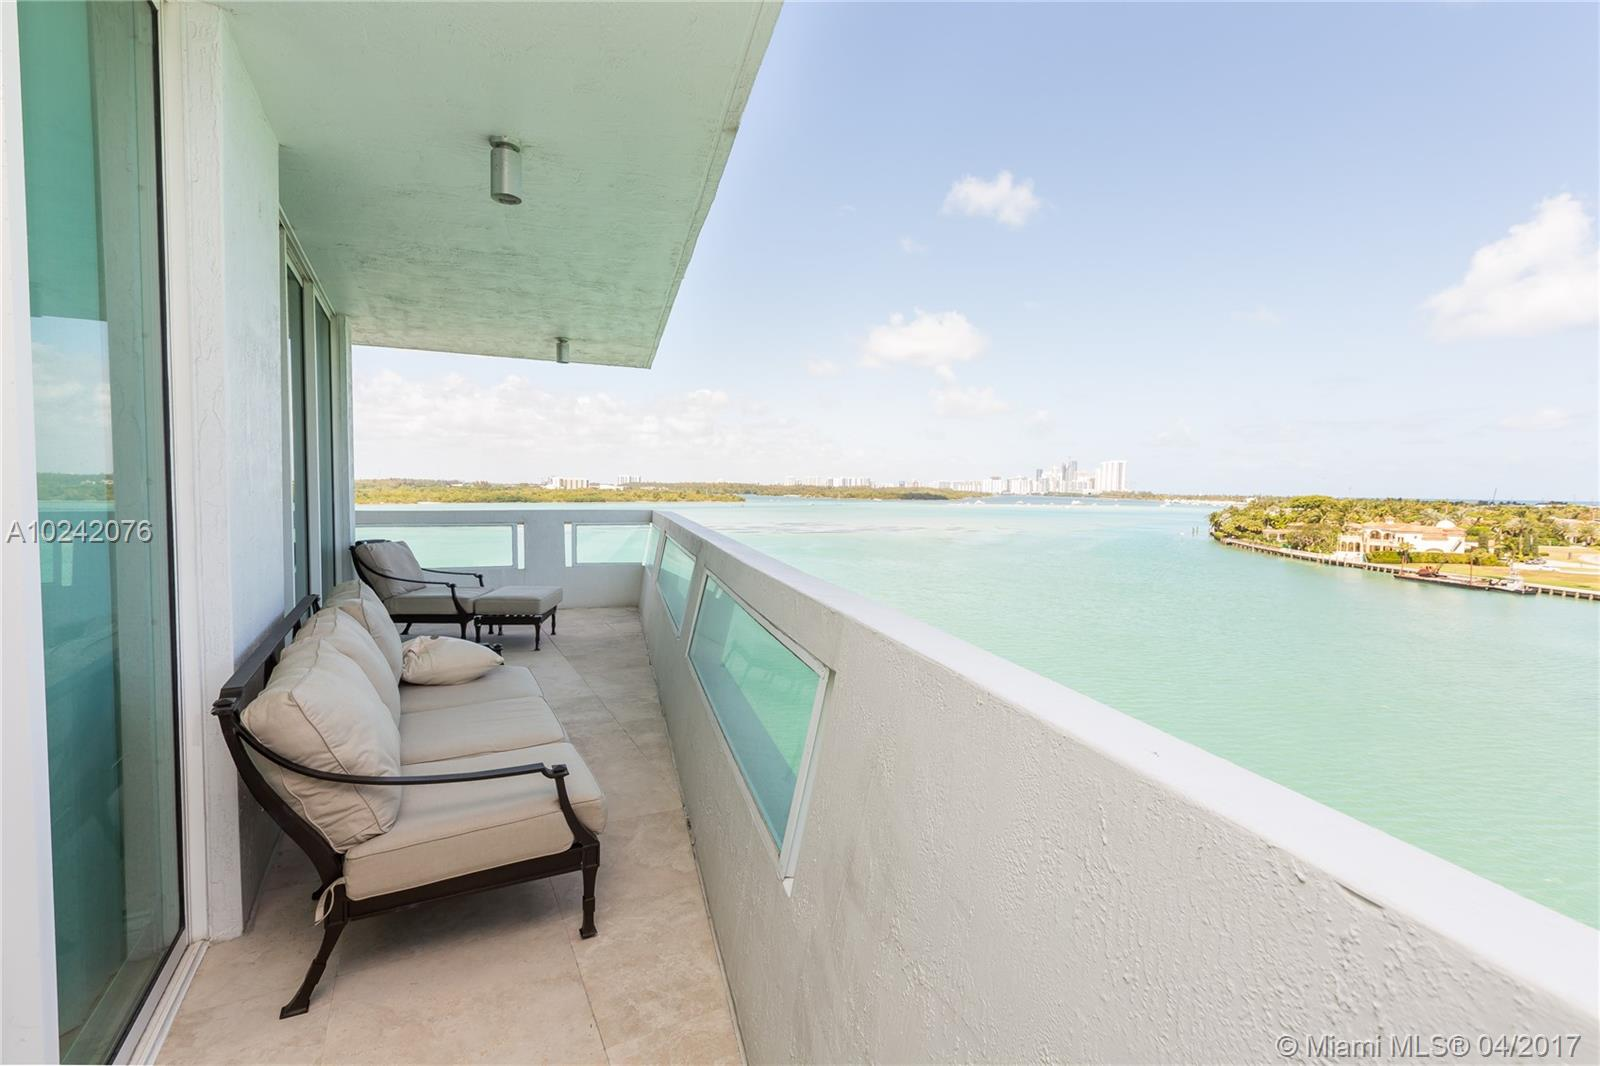 10261 E Bay Harbor Dr #701 For Sale A10242076, FL